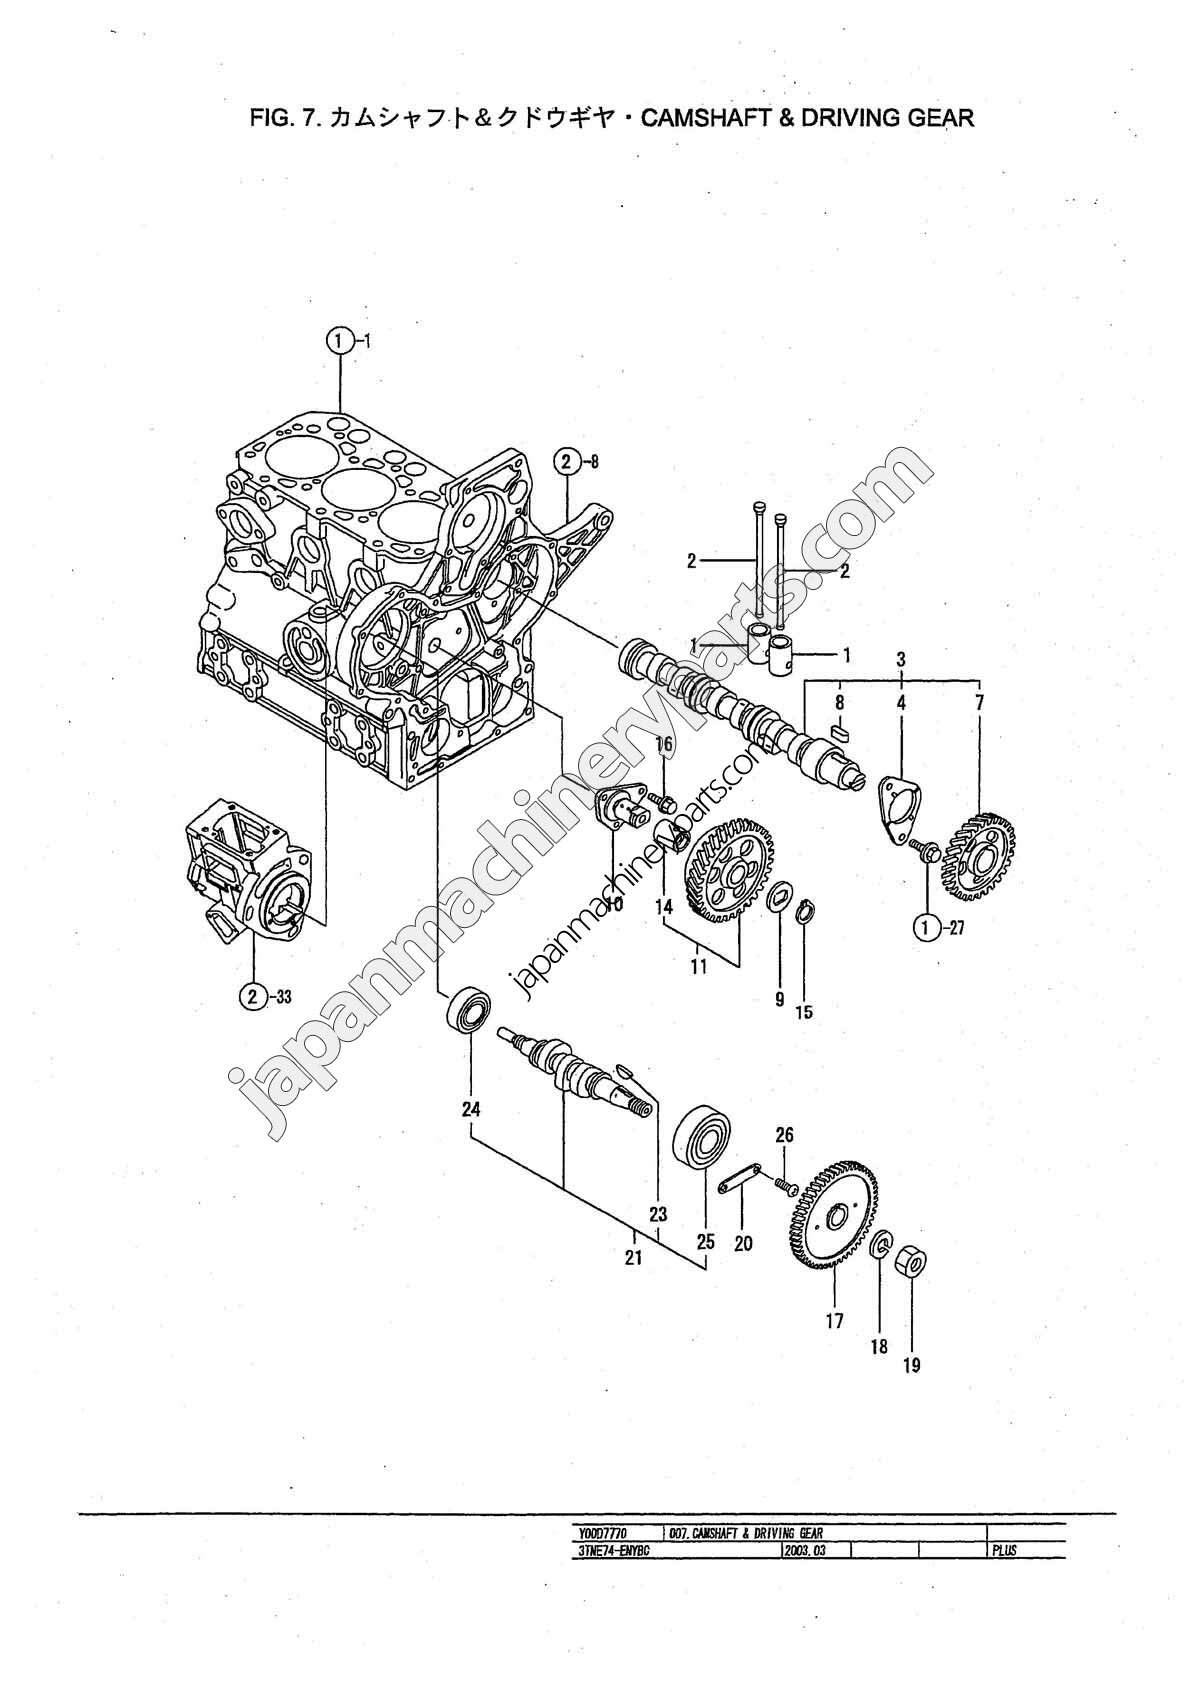 hight resolution of camshaft driving gear